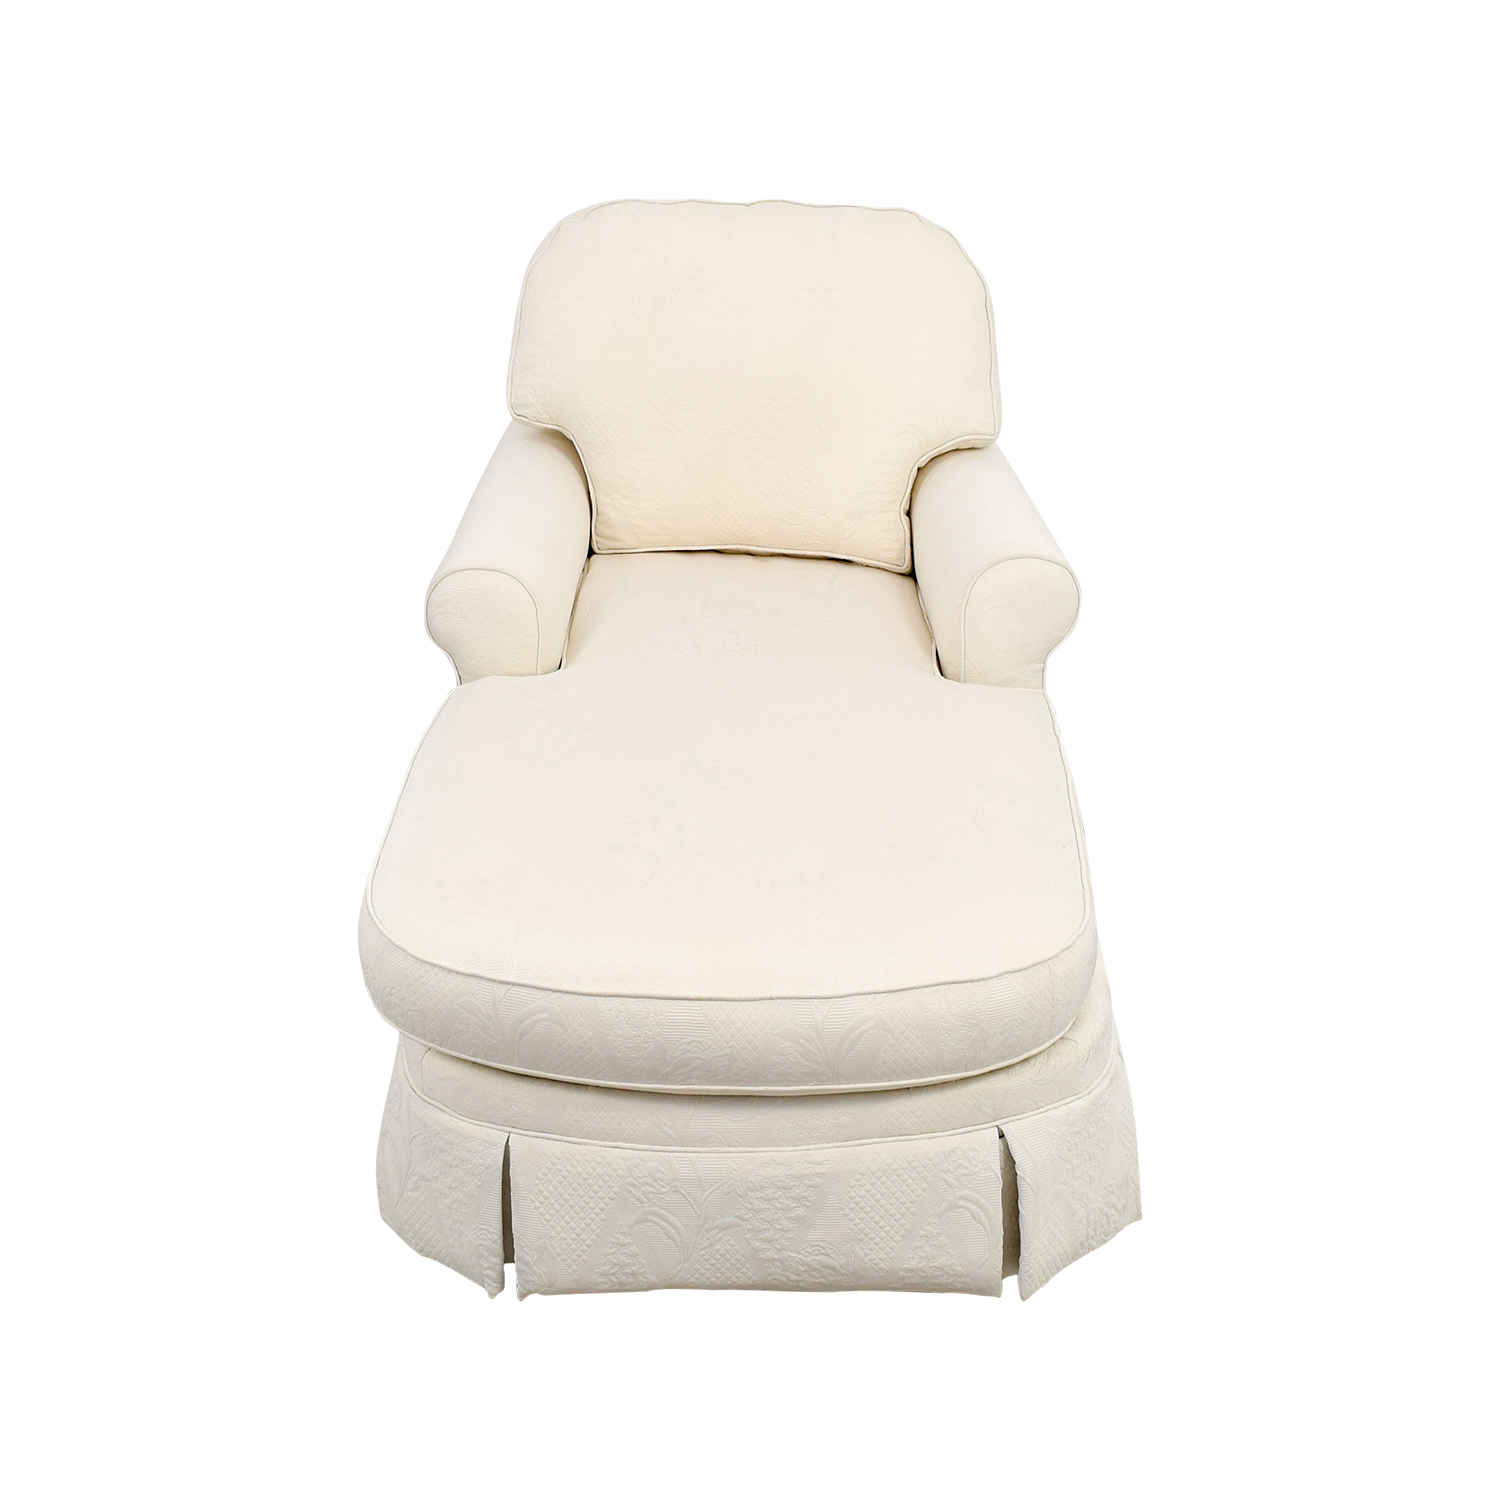 chair within ideas chairs furniture lounge to faux chaise with archive sale white tag for pertaining leather awesome